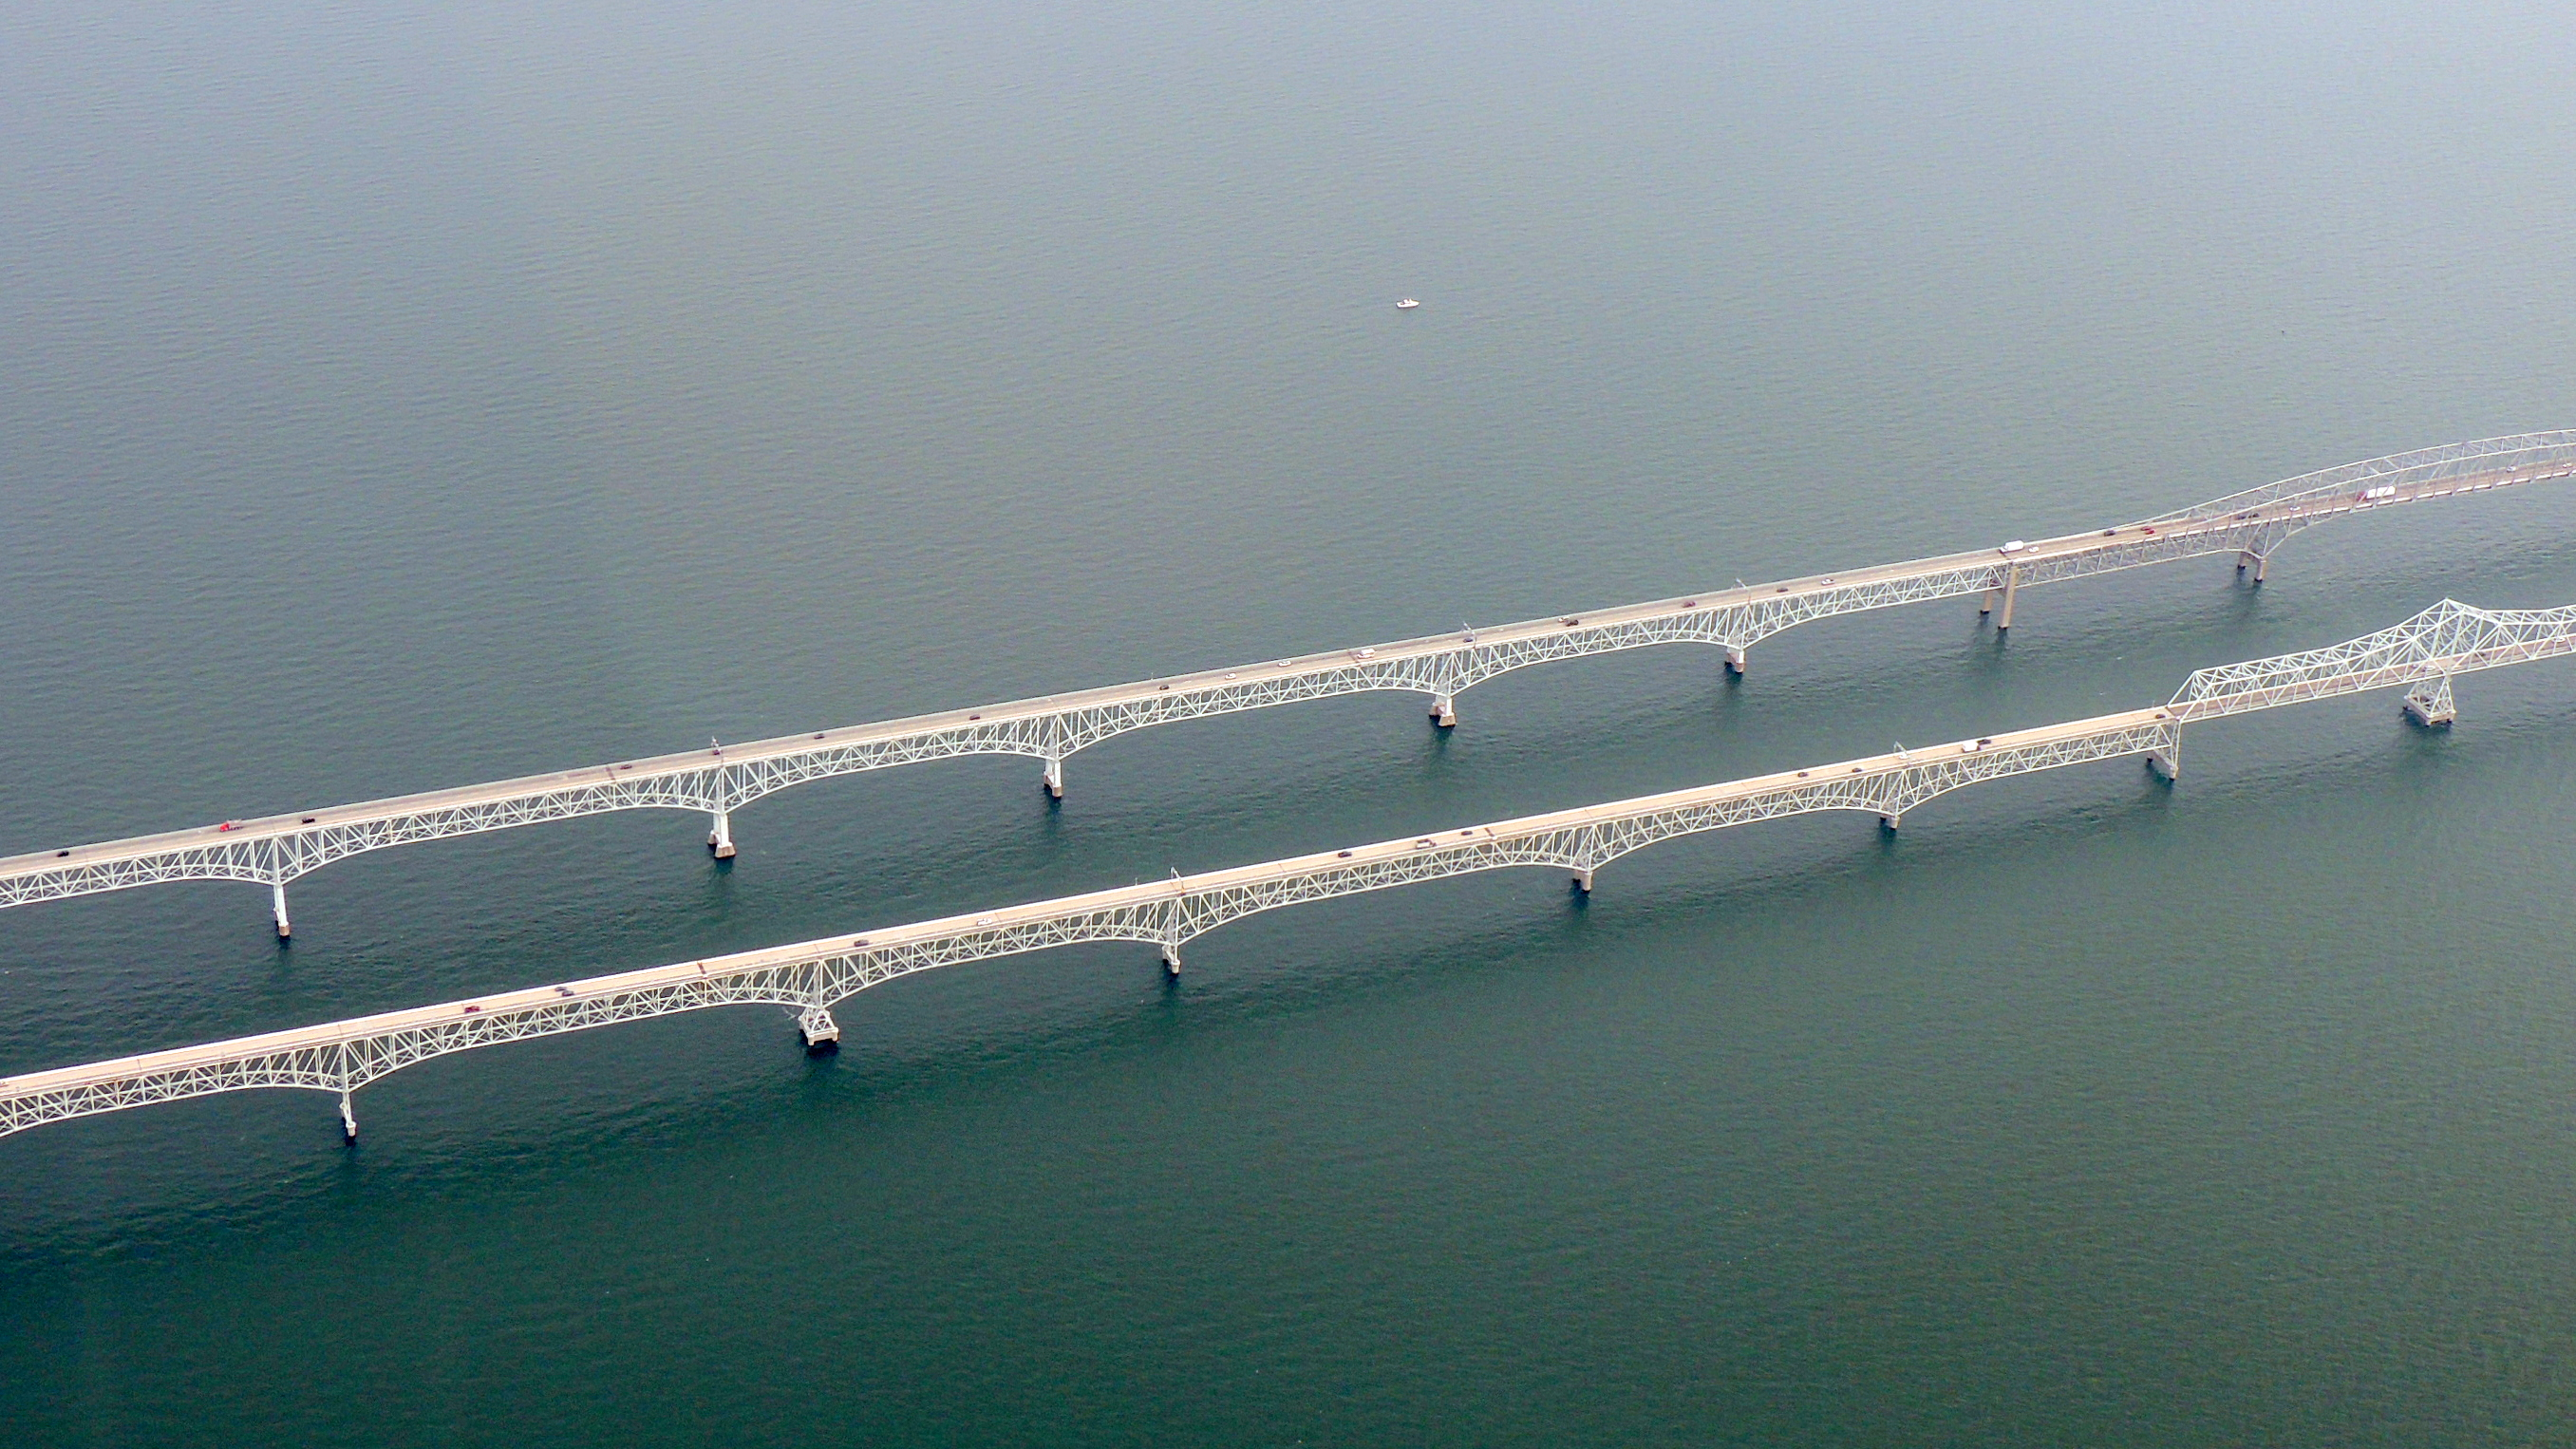 The Twin Bay Bridges over the Chesapeake